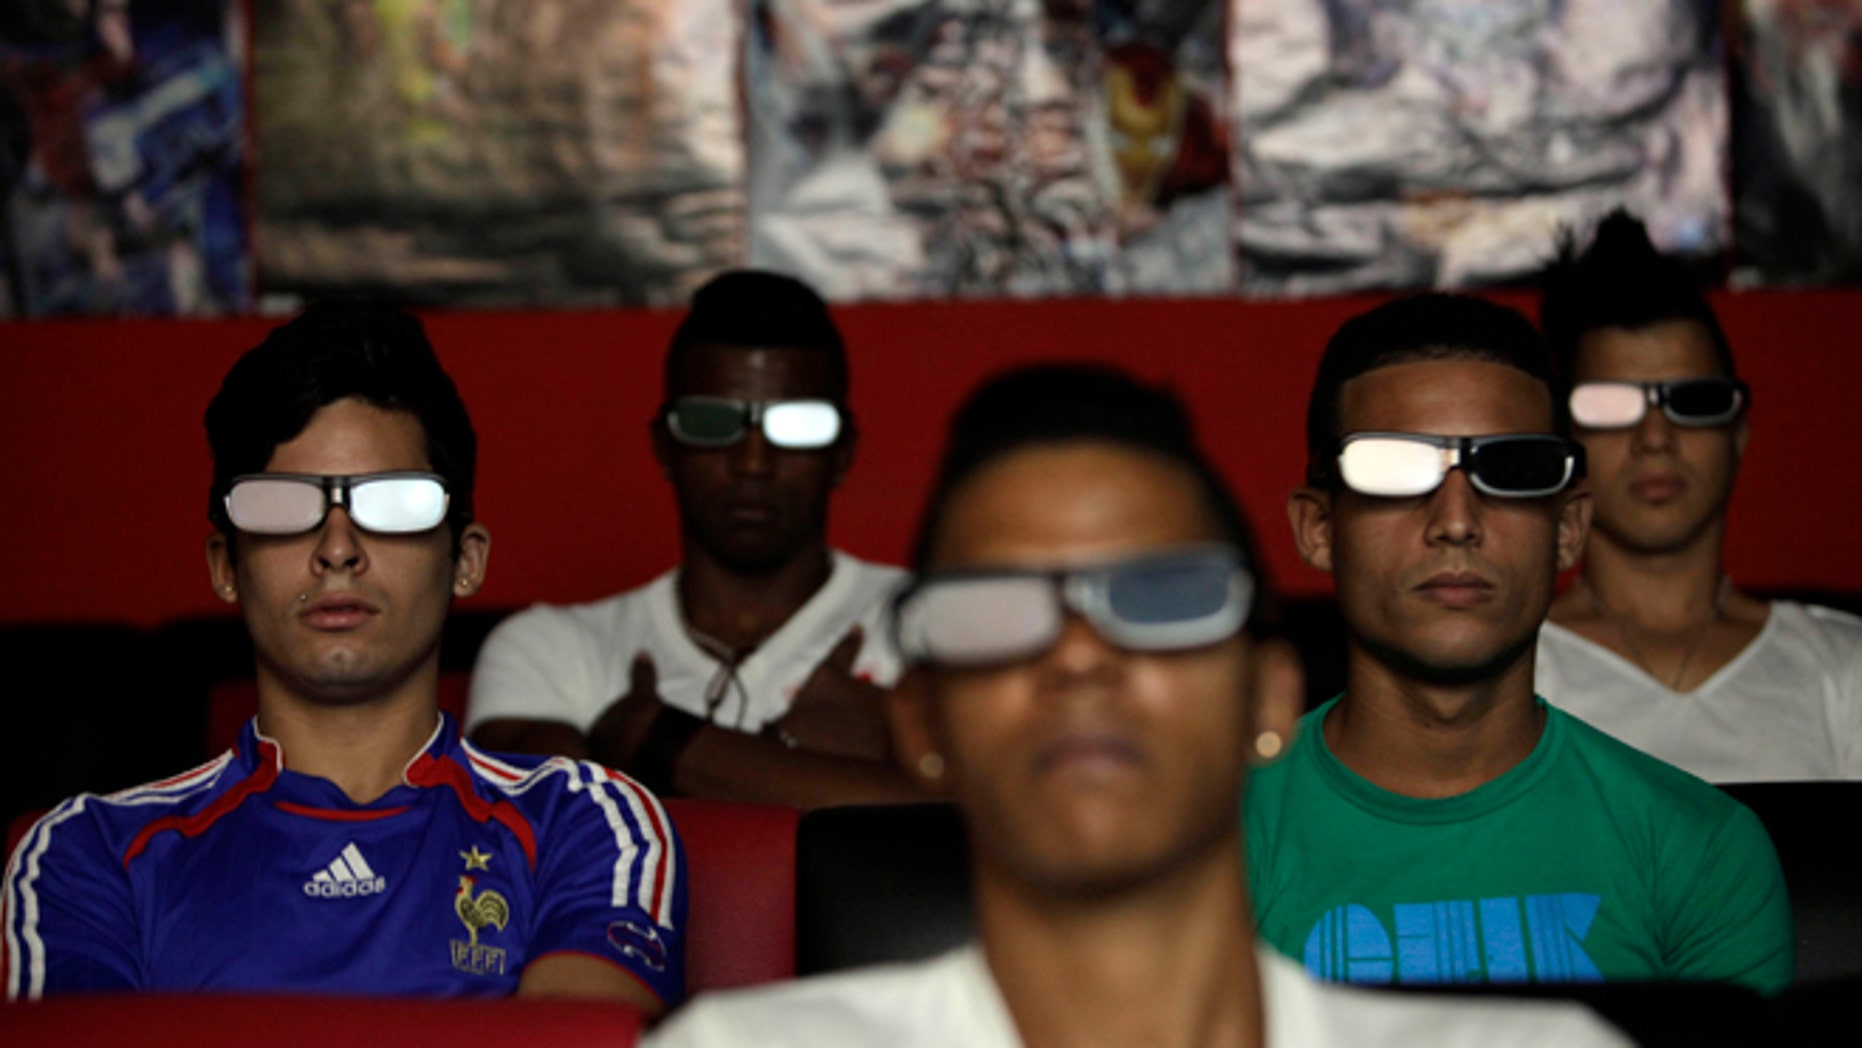 People watch a 3D movie at a private movie theater in Havana, Cuba, Monday, Oct. 28, 2013. Cuban entrepreneurs have quietly opened dozens of backroom video salons over the last year, seizing on ambiguities in licensing laws to transform cafes and childrenâs entertainment parlors into a new breed of private business unforeseen by recent official openings in the communist economy. (AP Photo/Franklin Reyes)